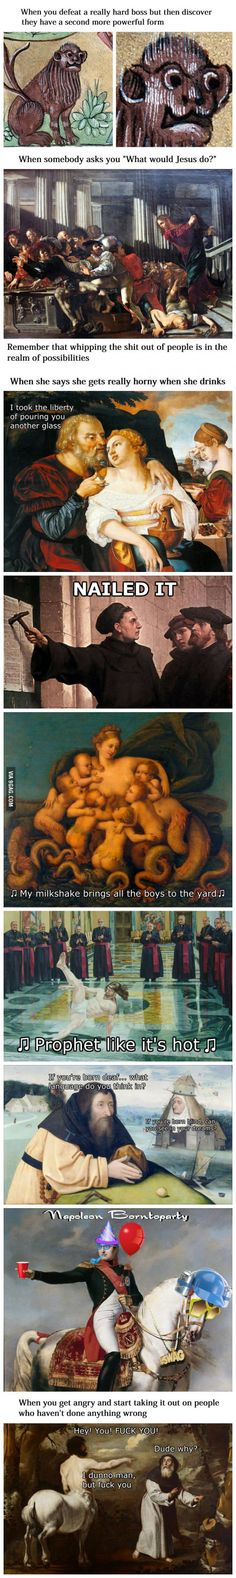 Classical Art Memes Latest (Part-4)